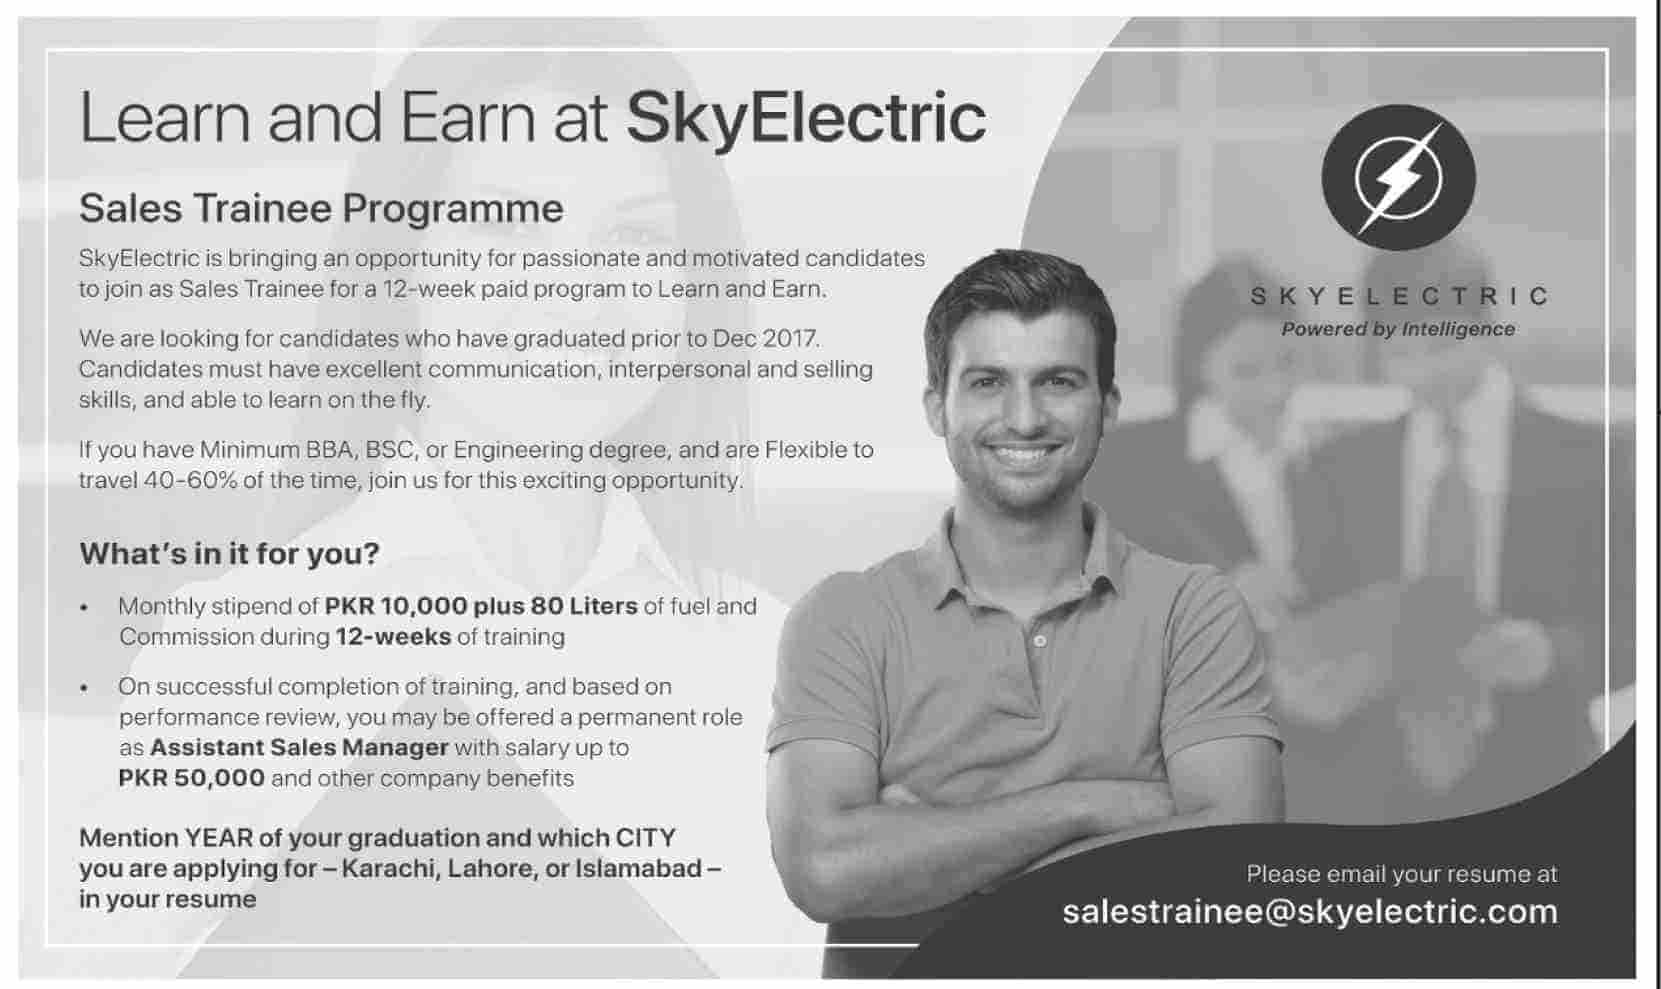 SkyElectric Sales Trainee Programme Jobs 2019 Latest Apply Online